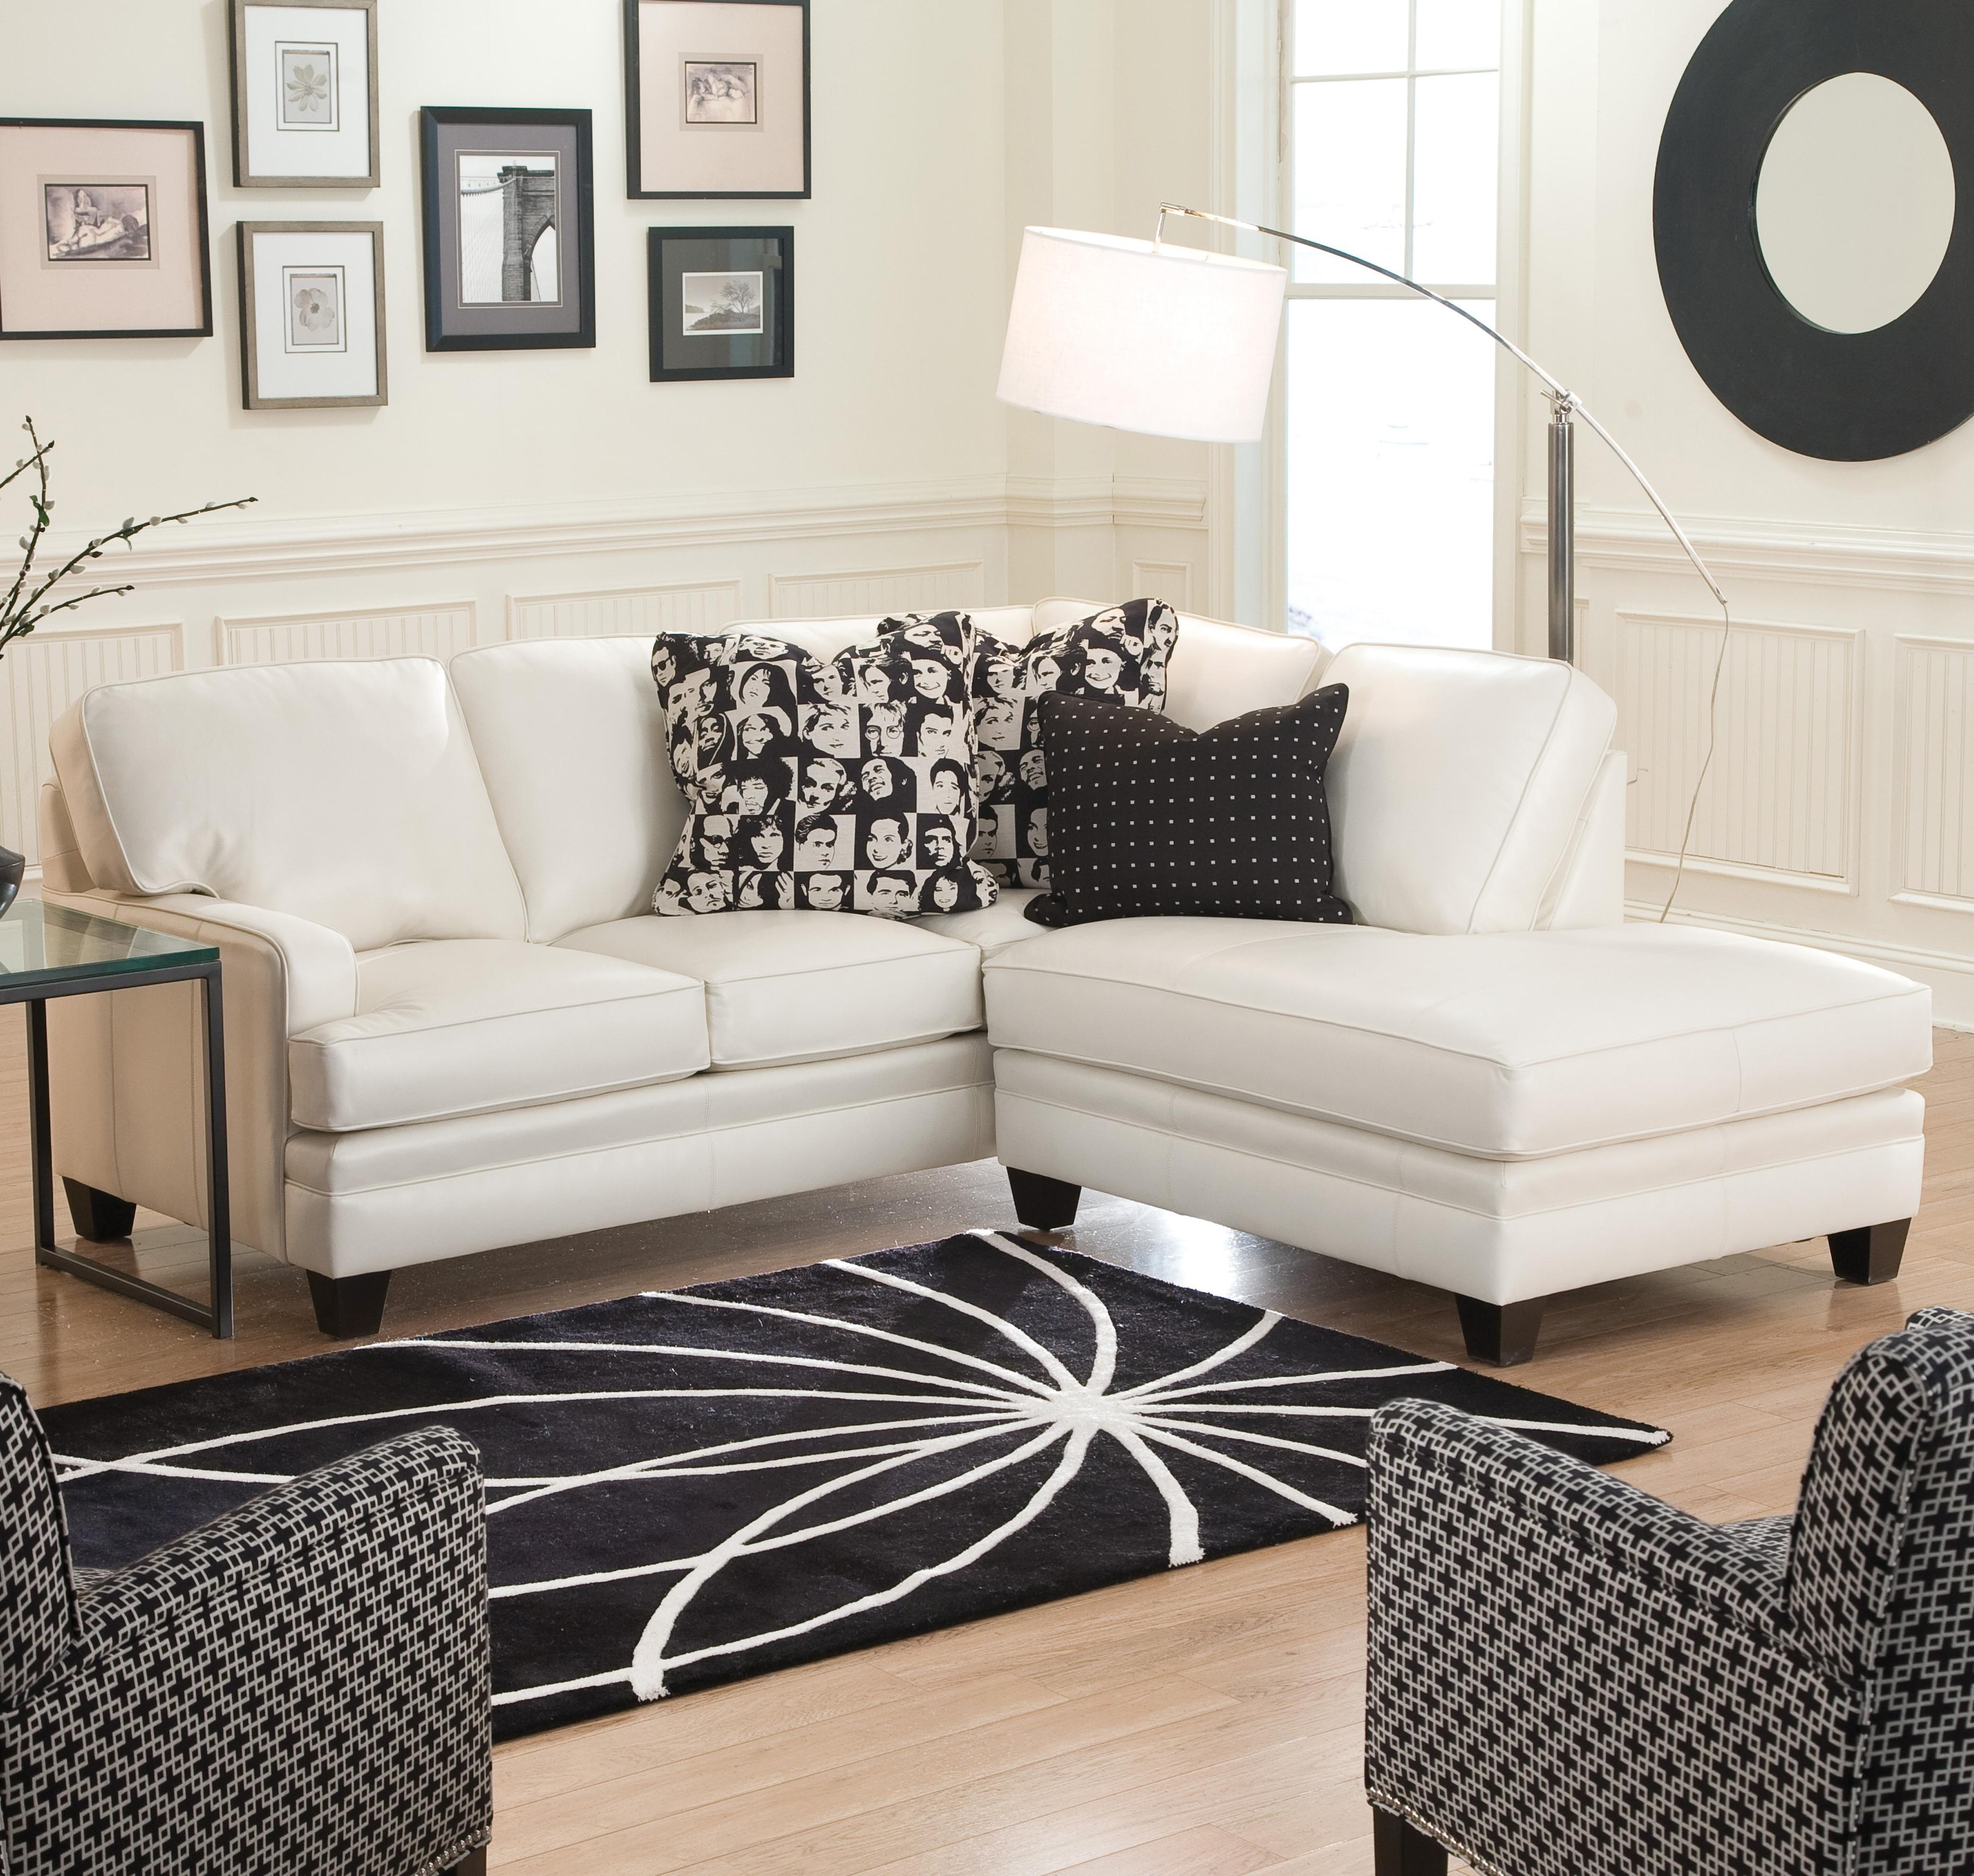 Small Sectional Sofa With Contemporary Looksmith Brothers For Trendy Lancaster Pa Sectional Sofas (View 11 of 20)